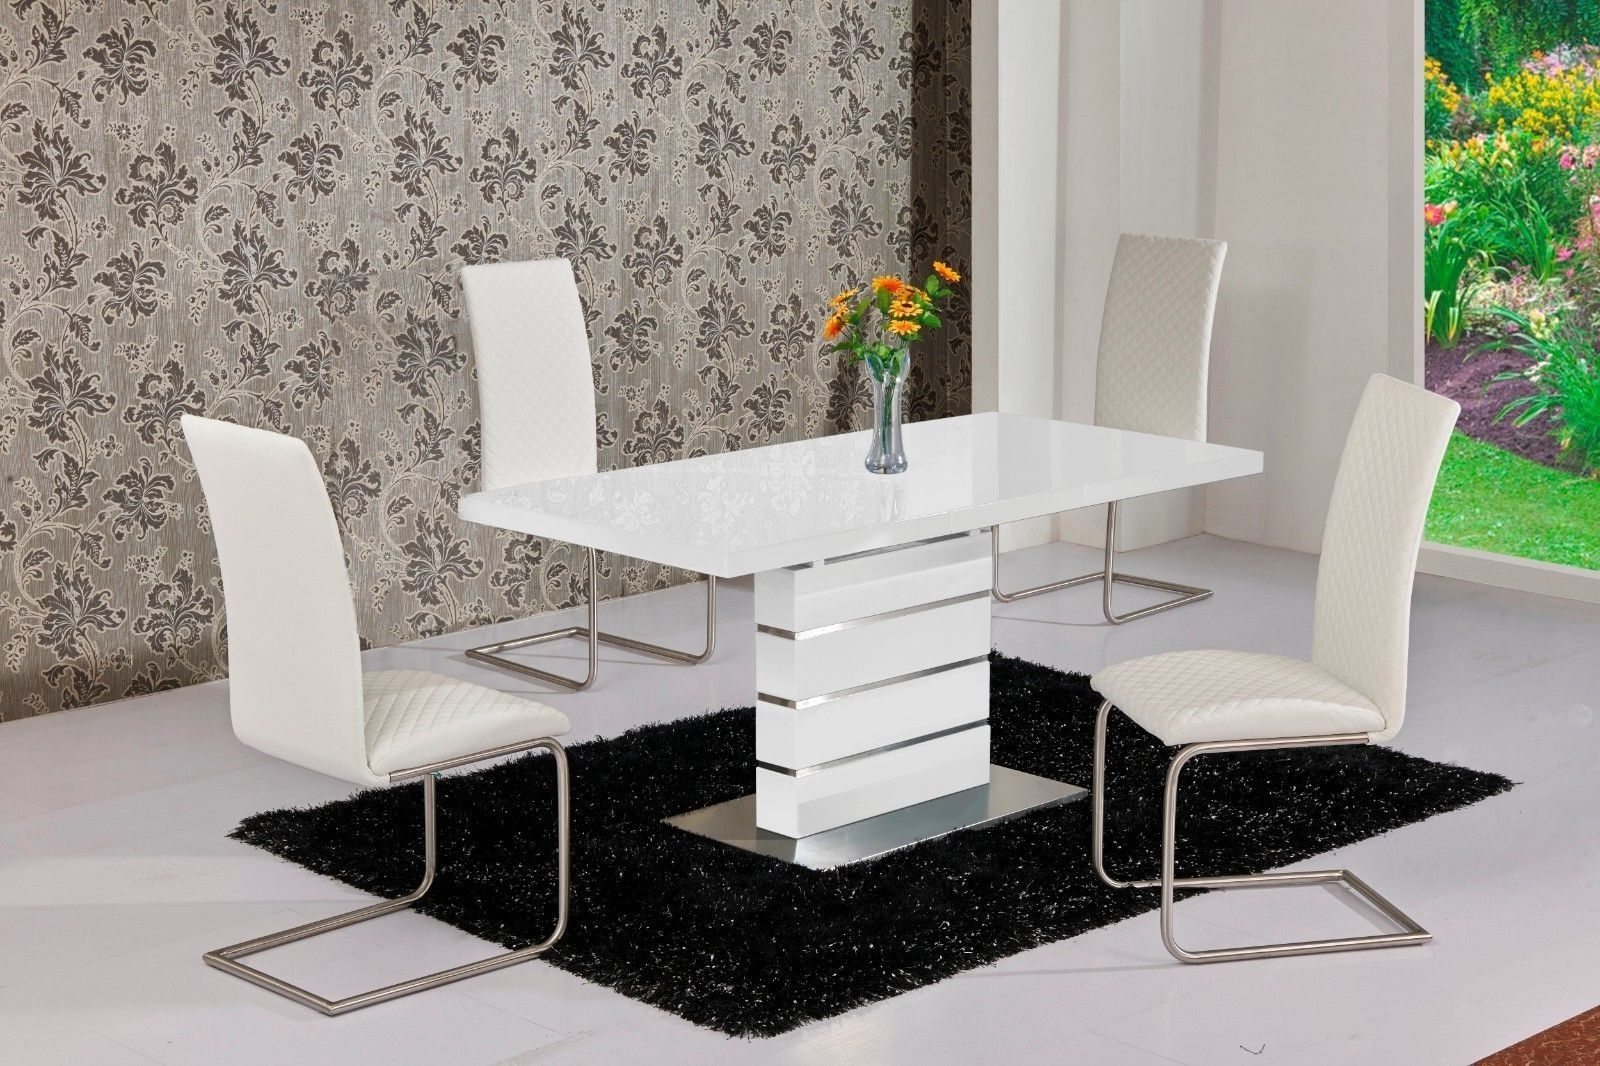 Latest Extendable Glass Dining Tables And 6 Chairs Pertaining To Mace High Gloss Extending 120 160 Dining Table & Chair Set – White (View 7 of 25)